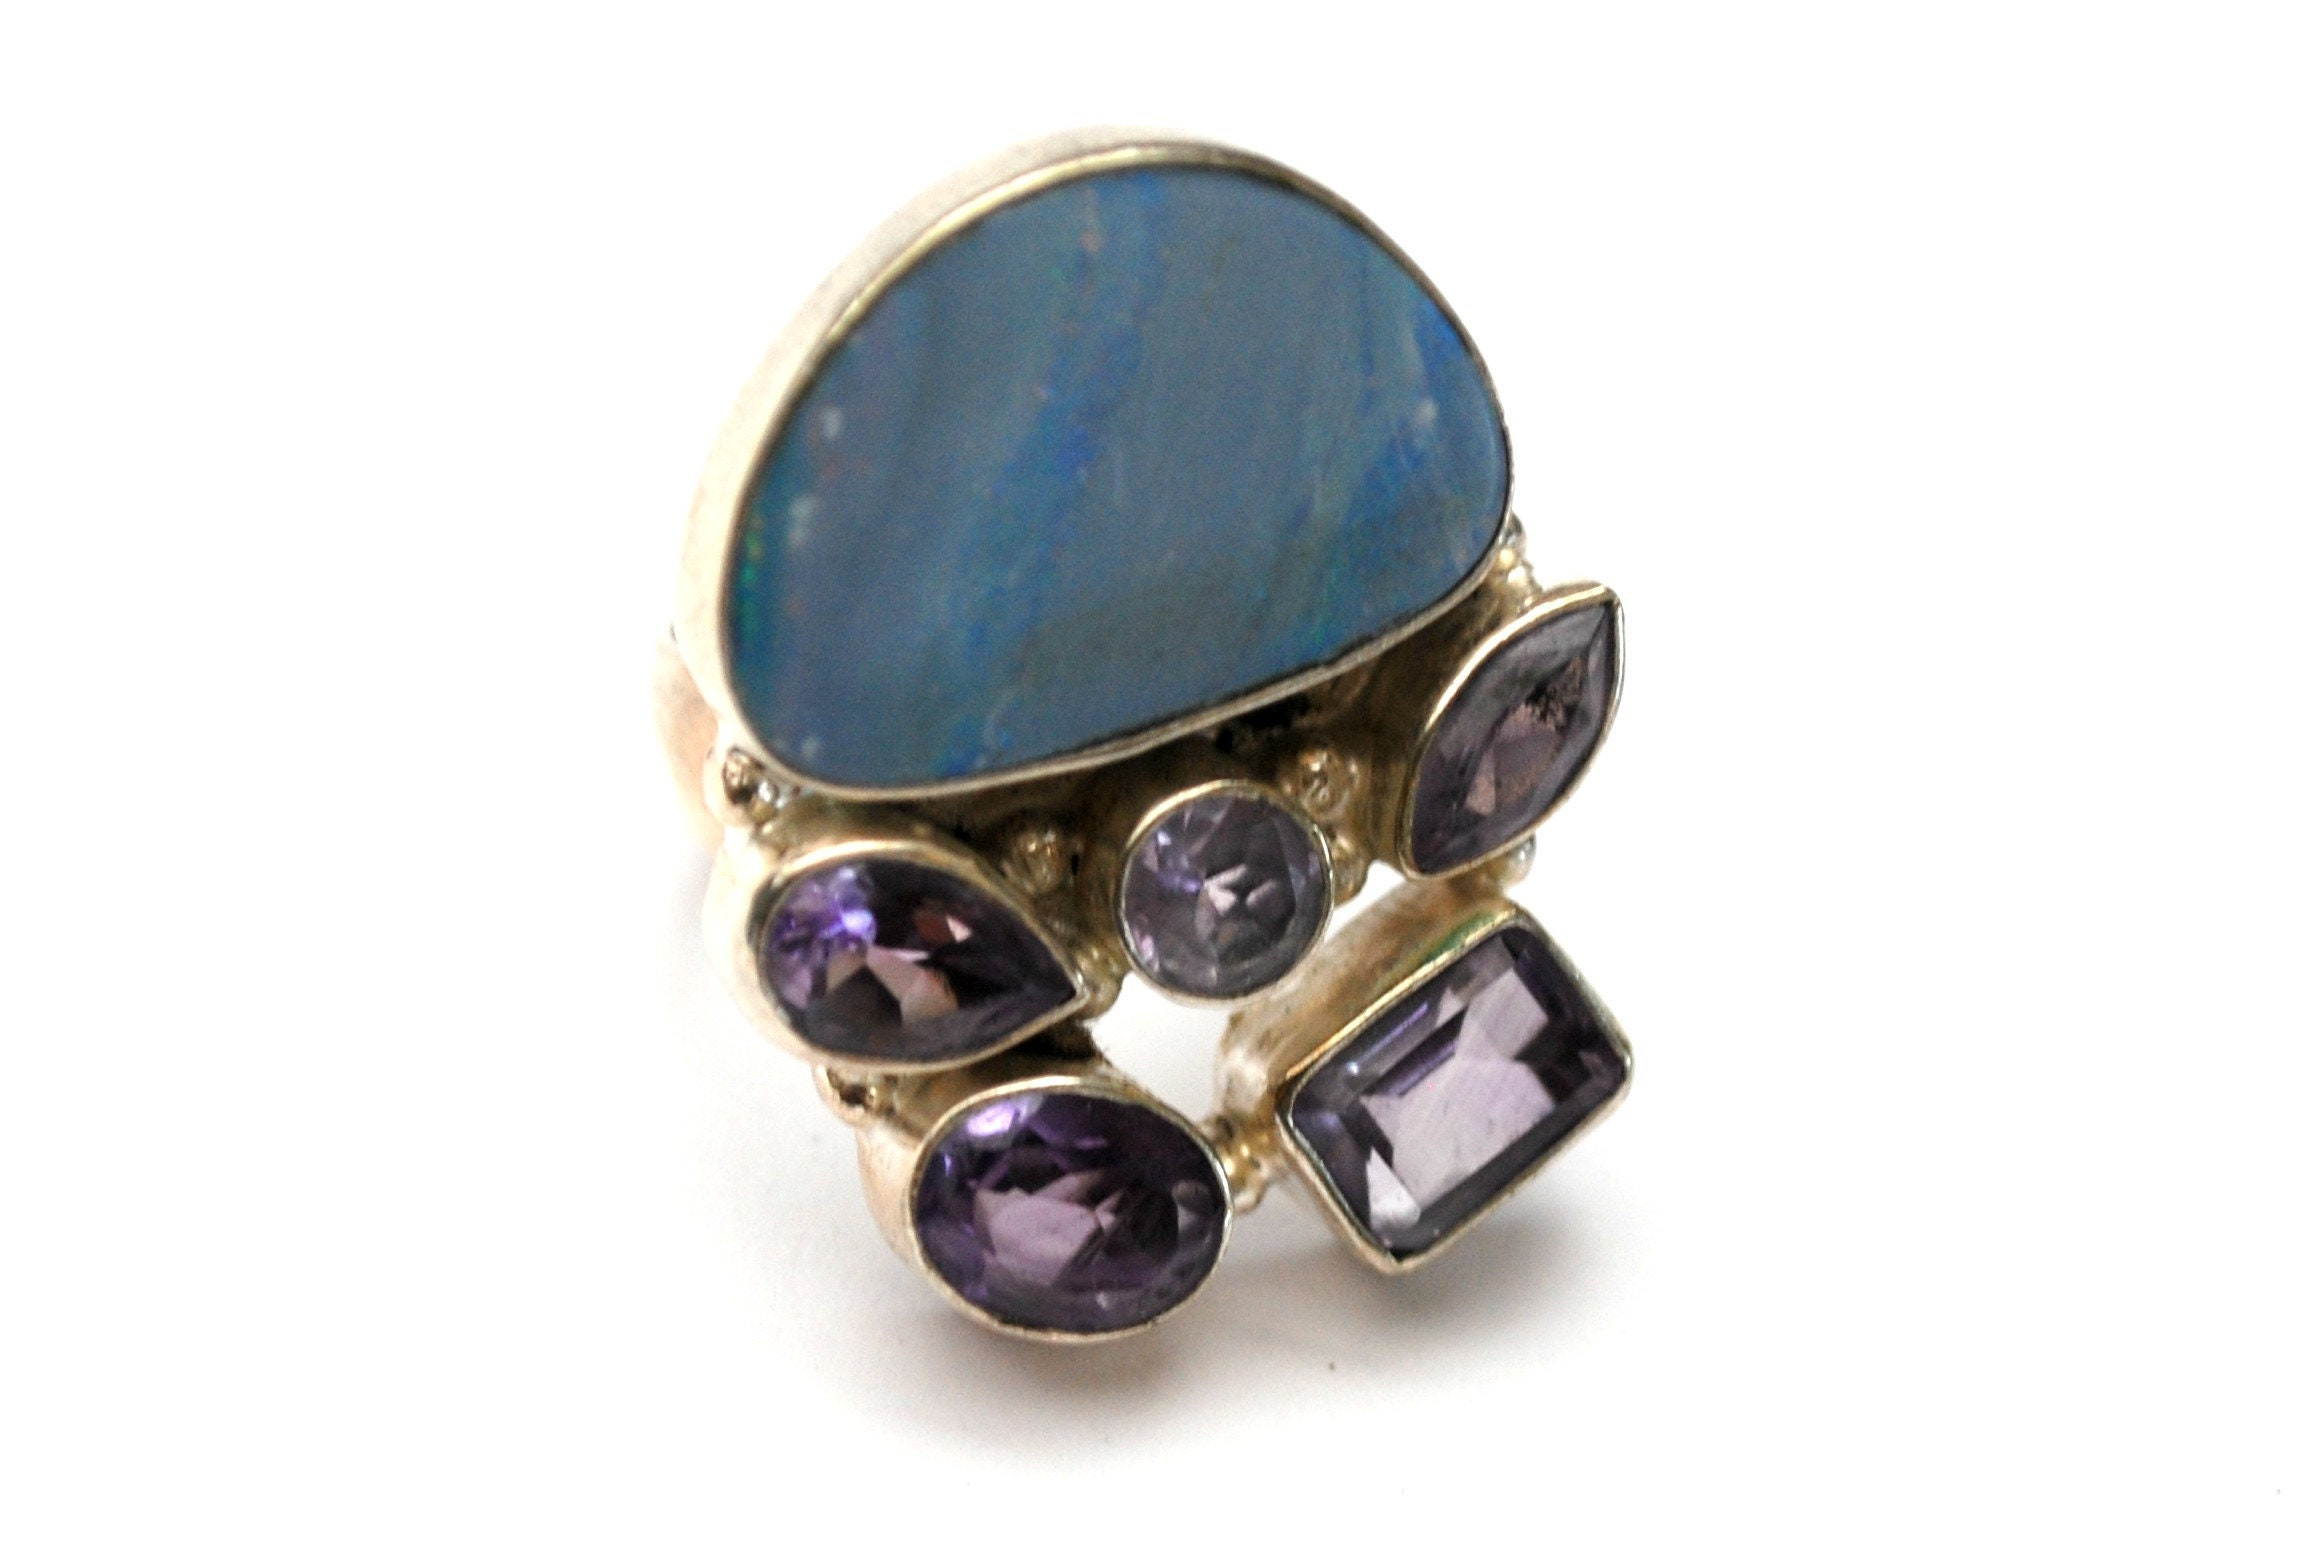 Size 6 Vintage Wide Band Opal Inlay Statement Ring Sterling Silver Amethyst Ring